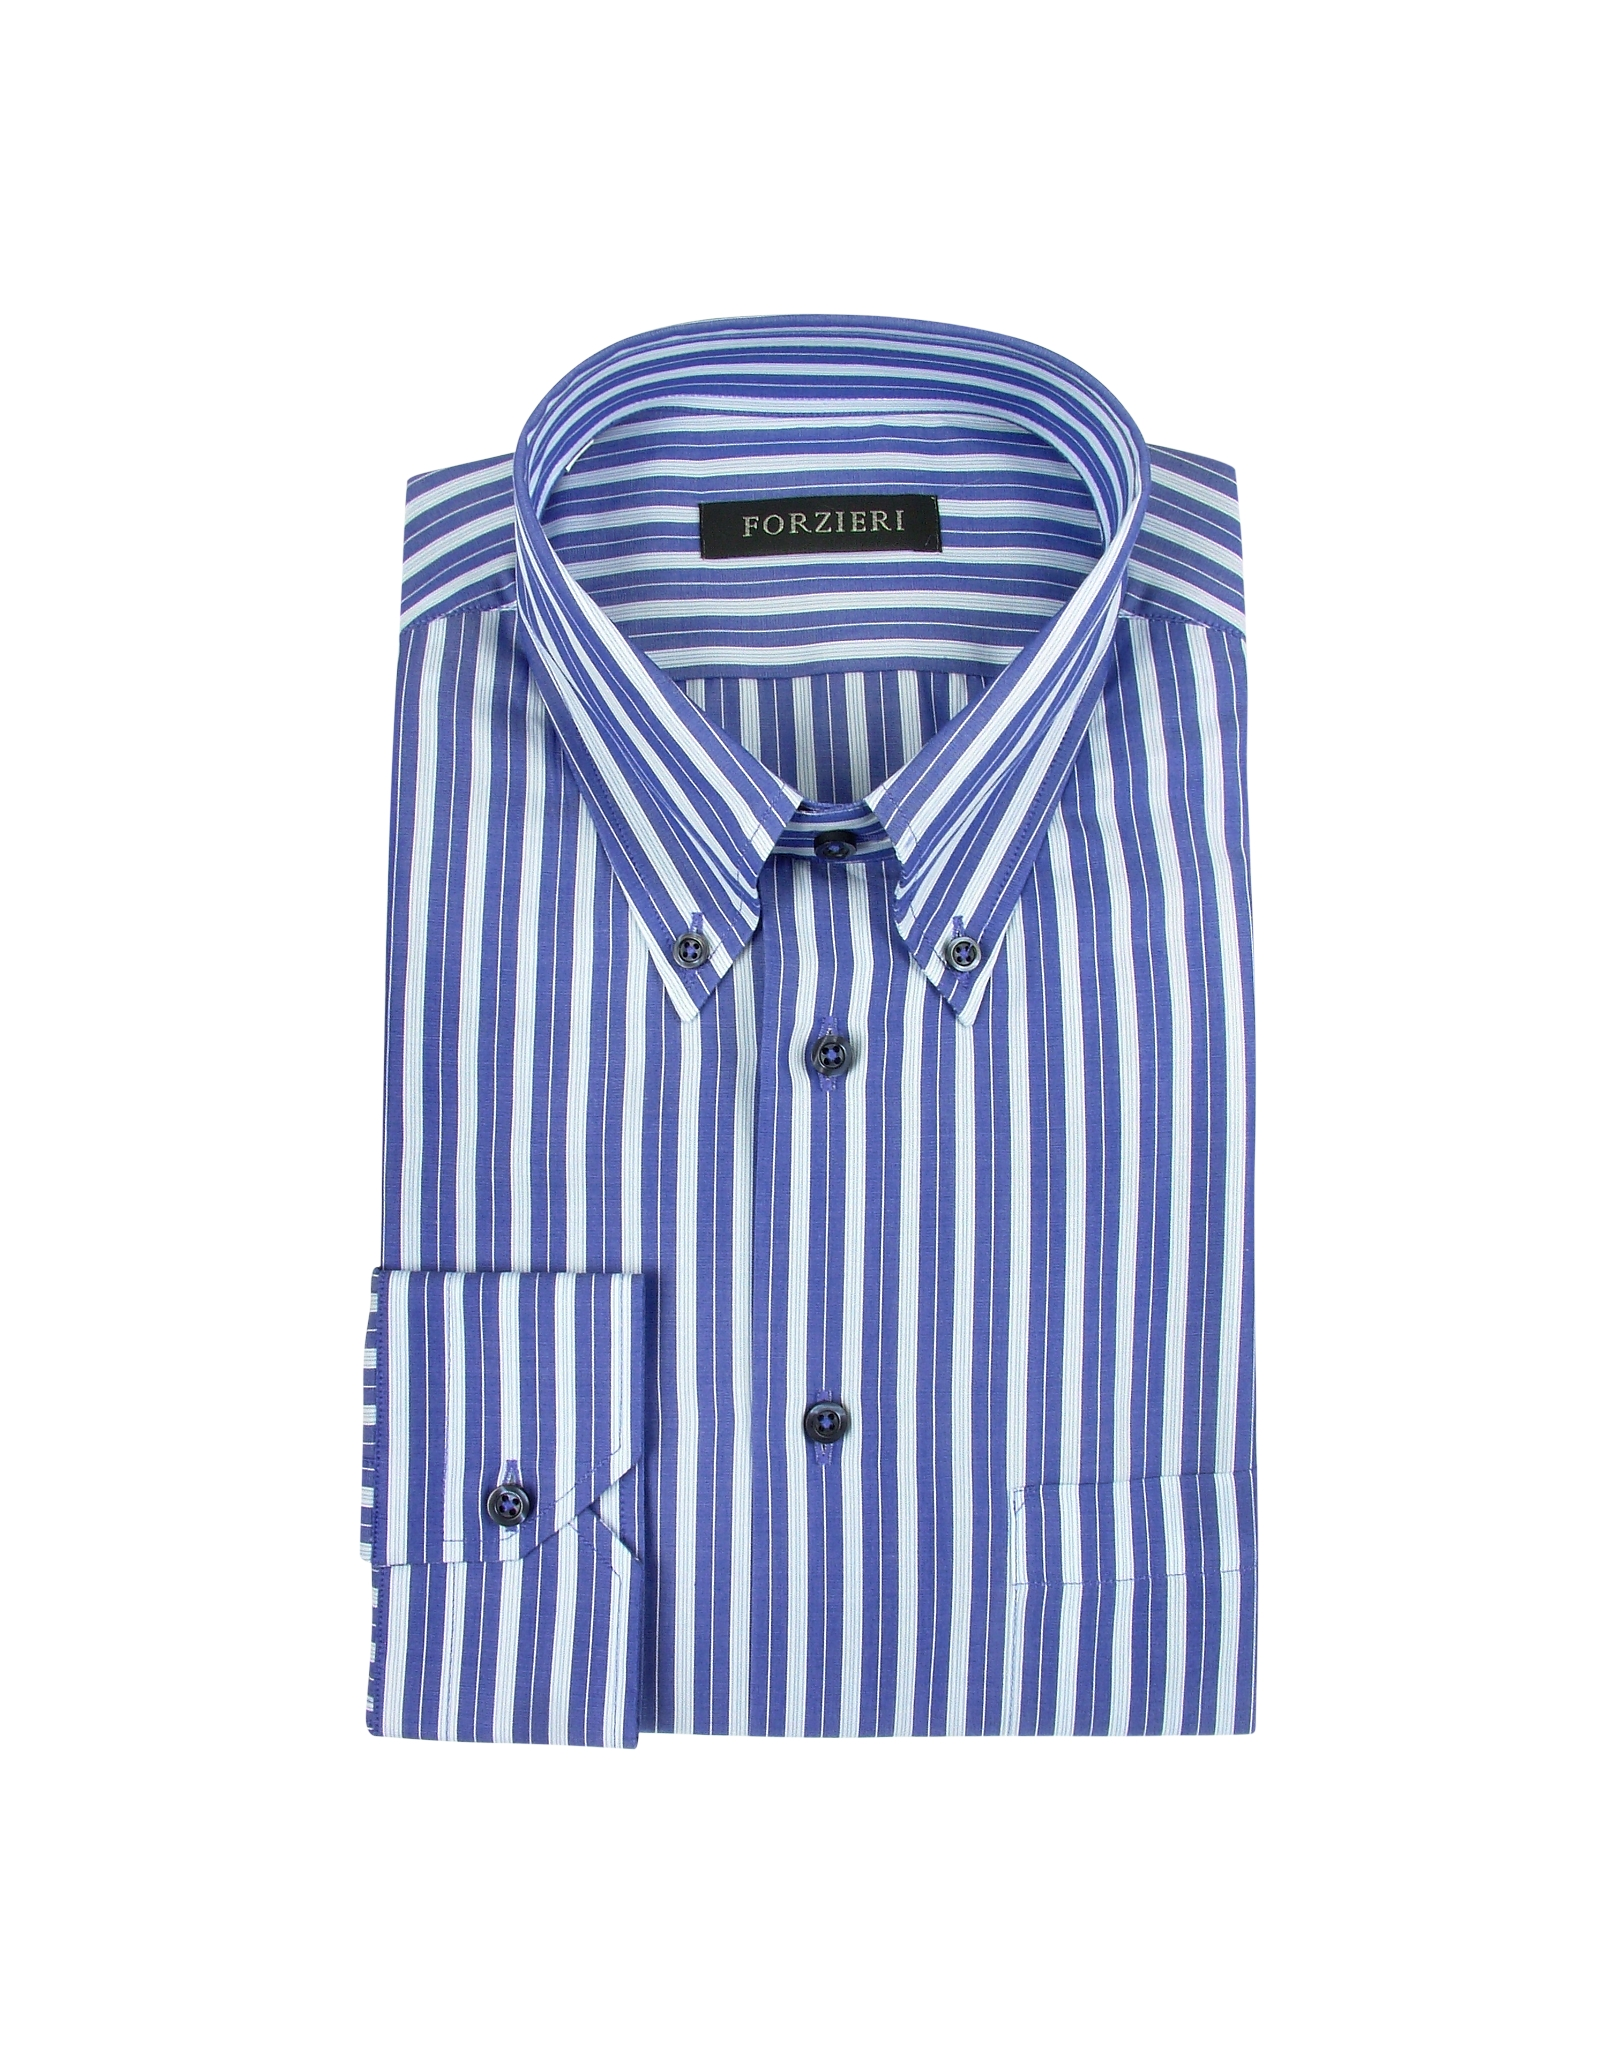 Forzieri Blue Striped Button Down Cotton Dress Shirt In